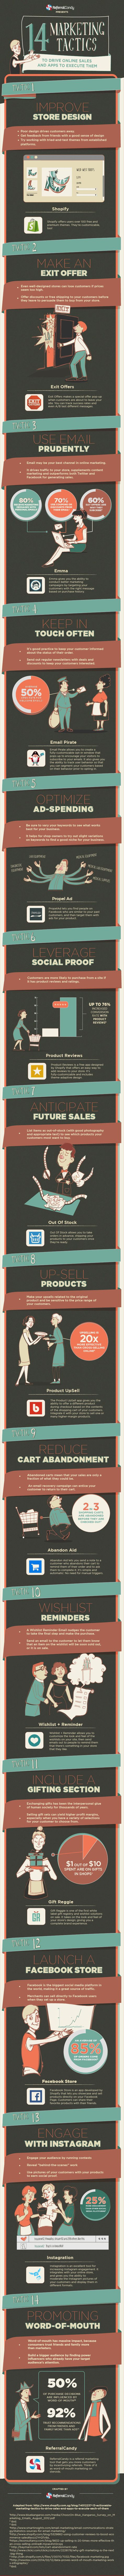 14 Marketing Tactics To Drive Sales And Apps to Execute Them